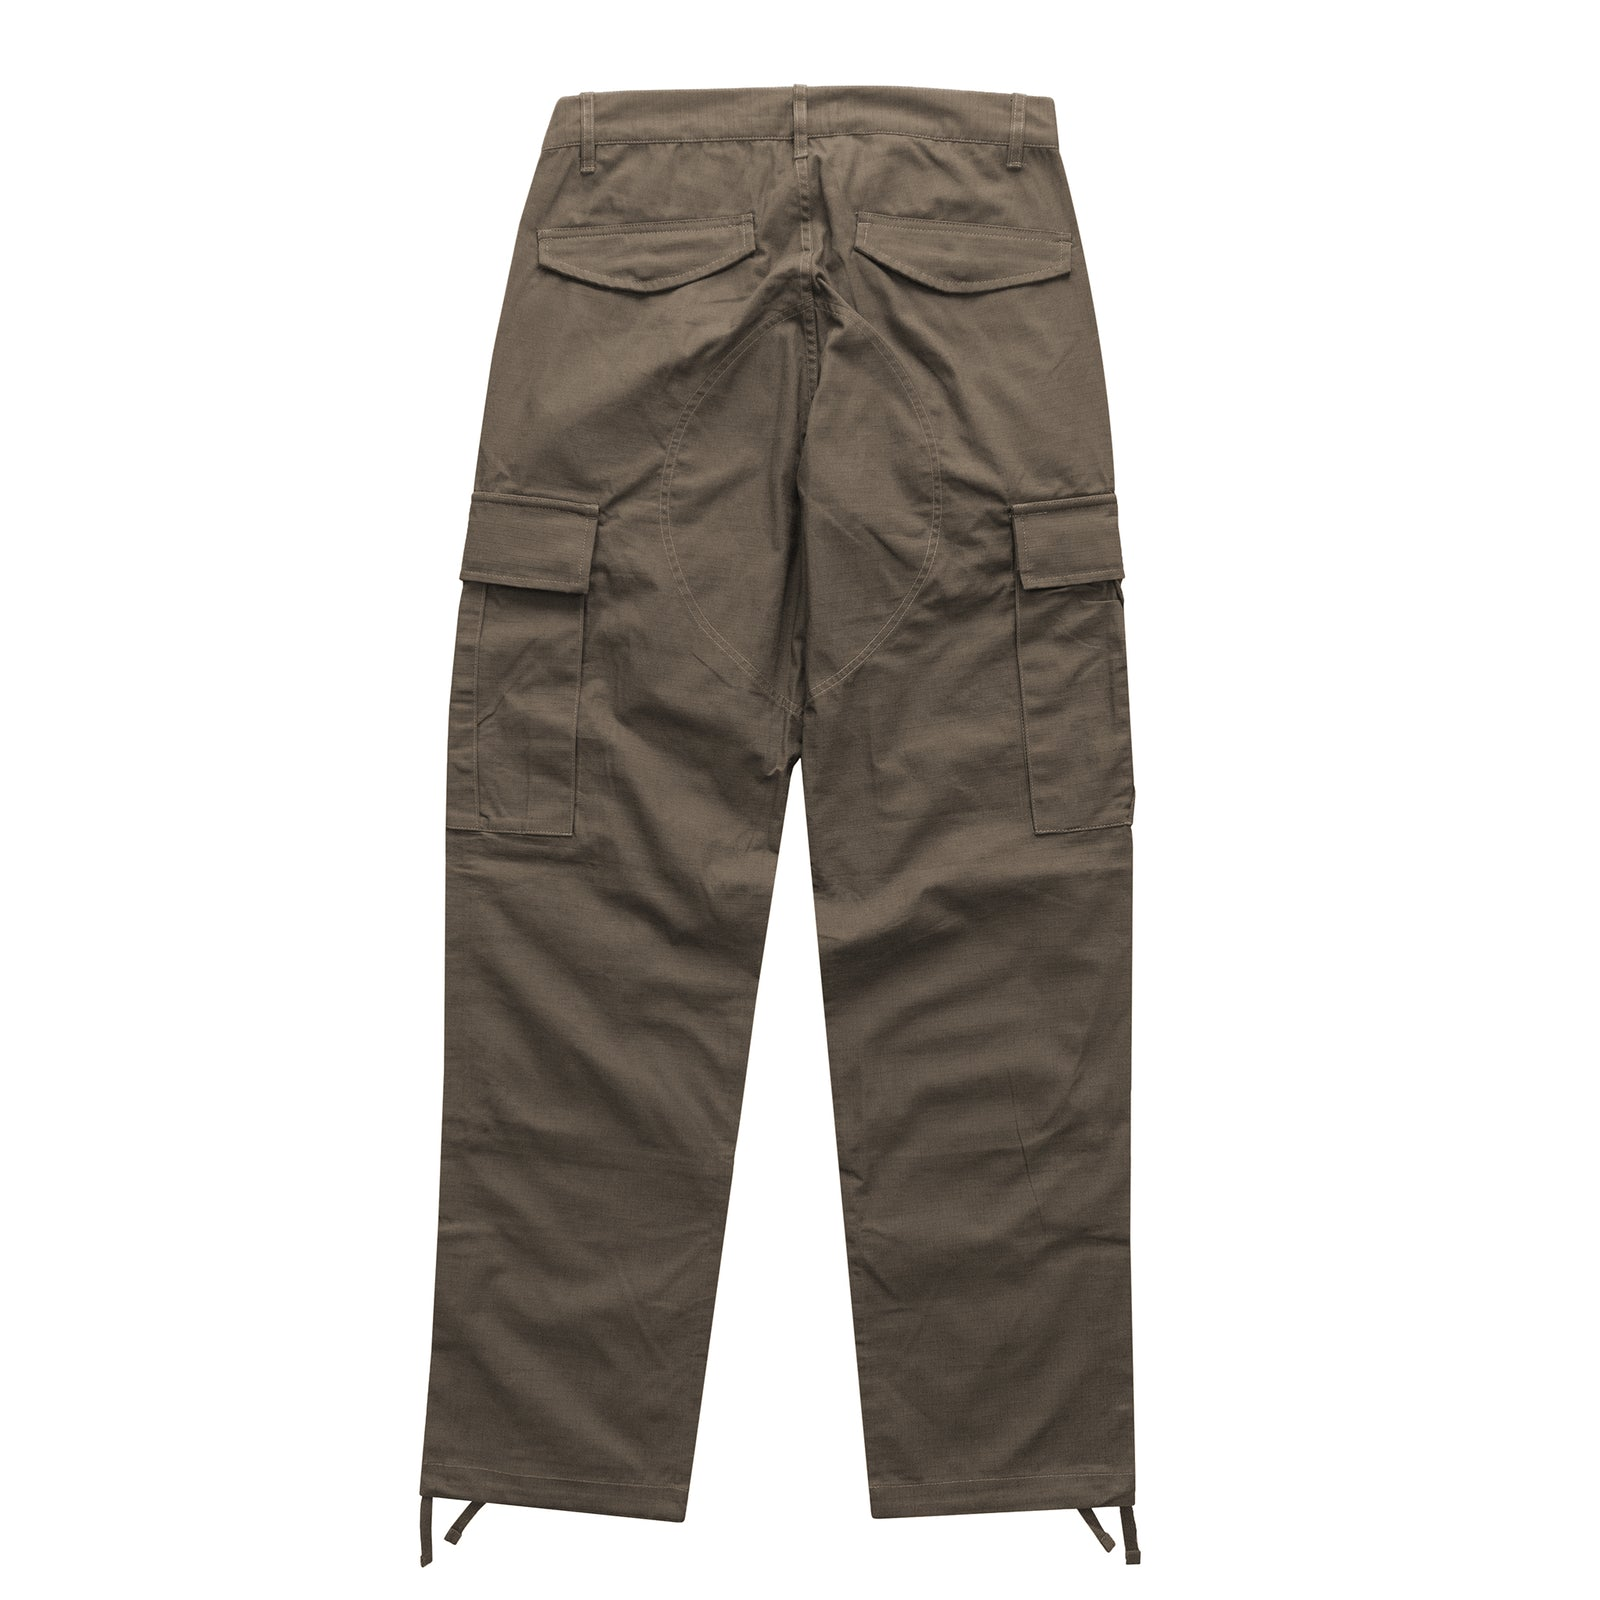 BDU Ripstop Cargo Pant - Military Olive